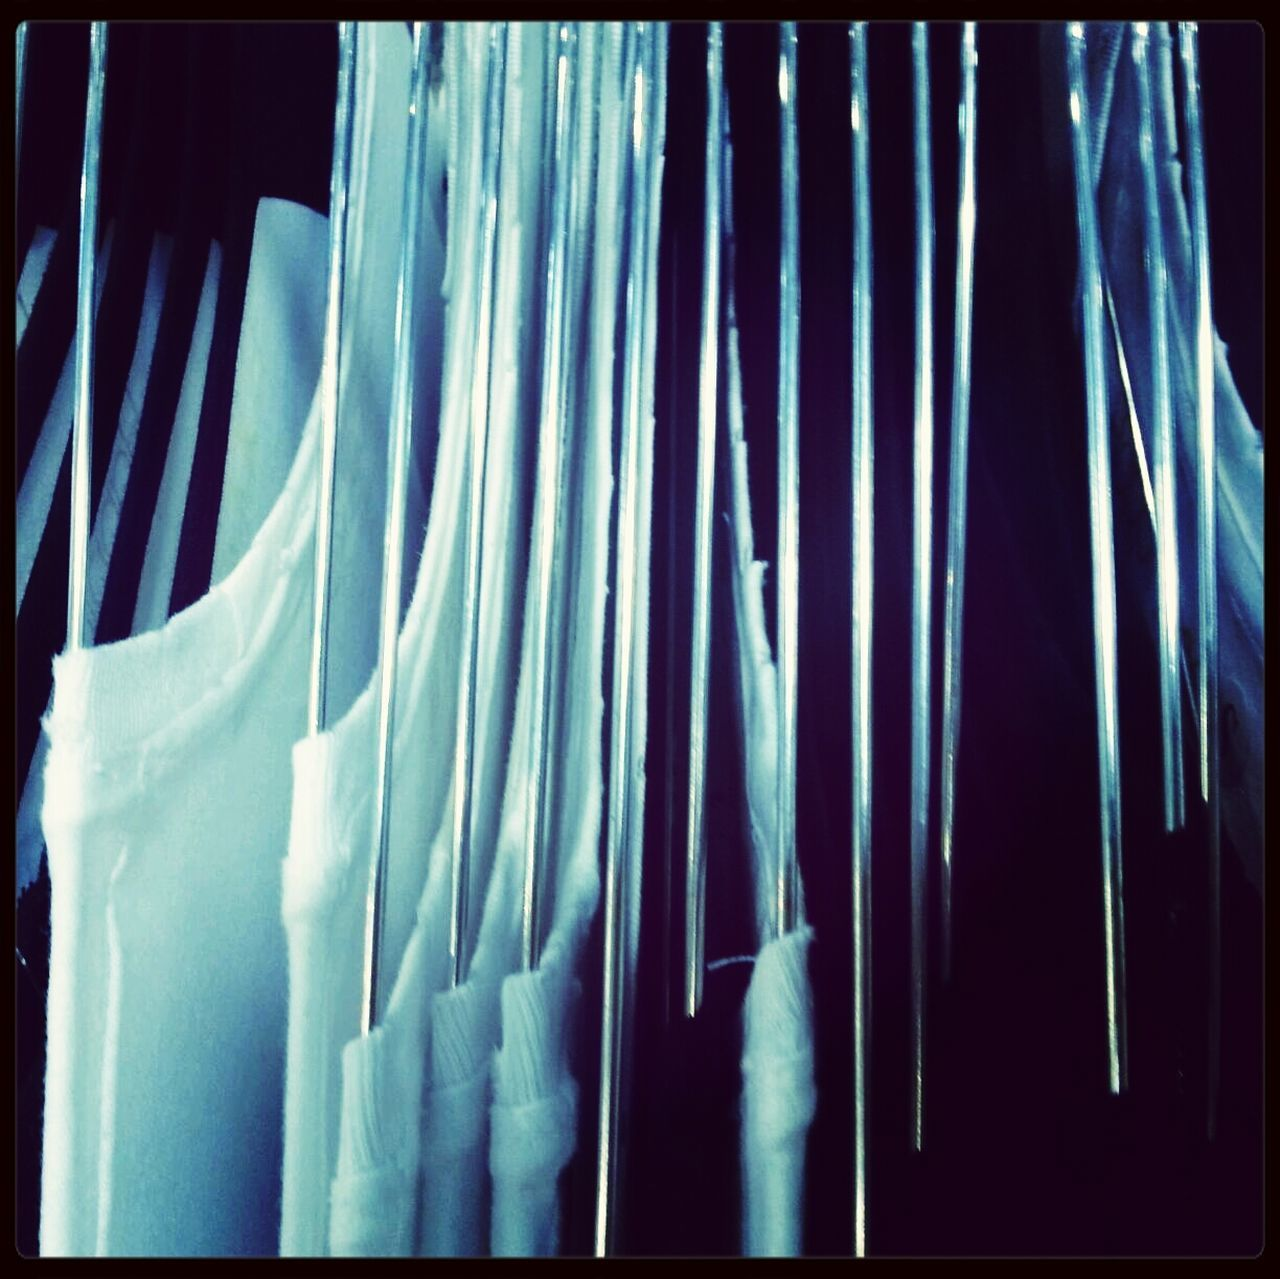 hanging, no people, curtain, textile, indoors, drapes, panoramic, close-up, day, coathanger